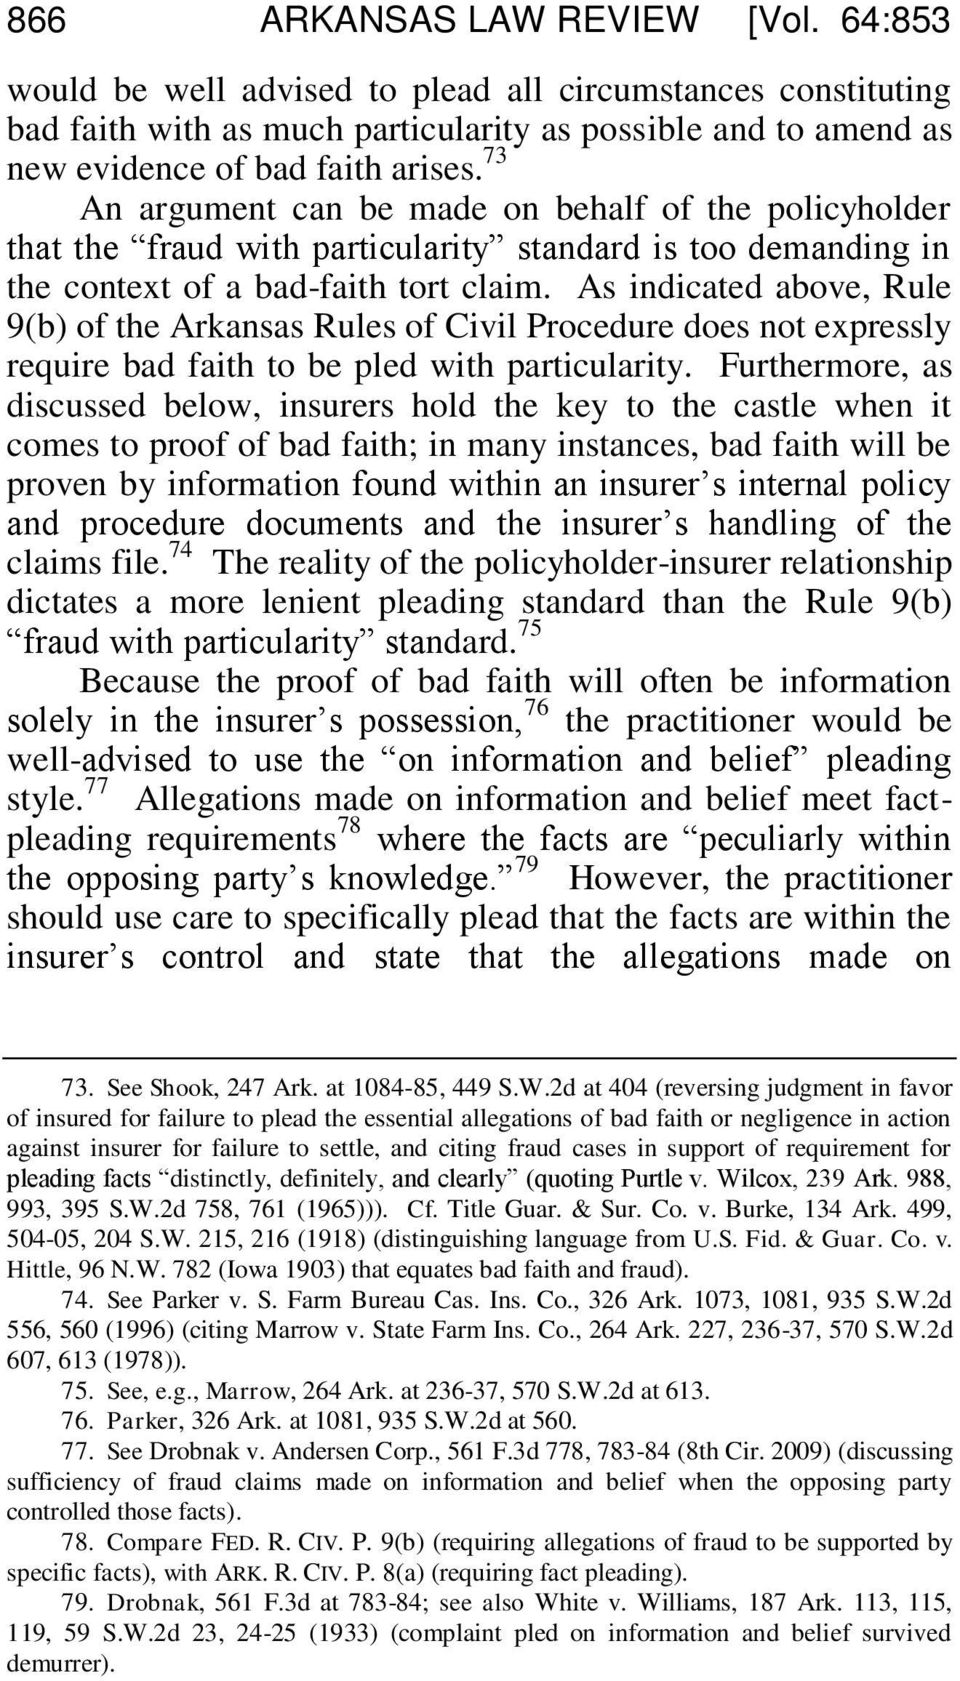 As indicated above, Rule 9(b) of the Arkansas Rules of Civil Procedure does not expressly require bad faith to be pled with particularity.